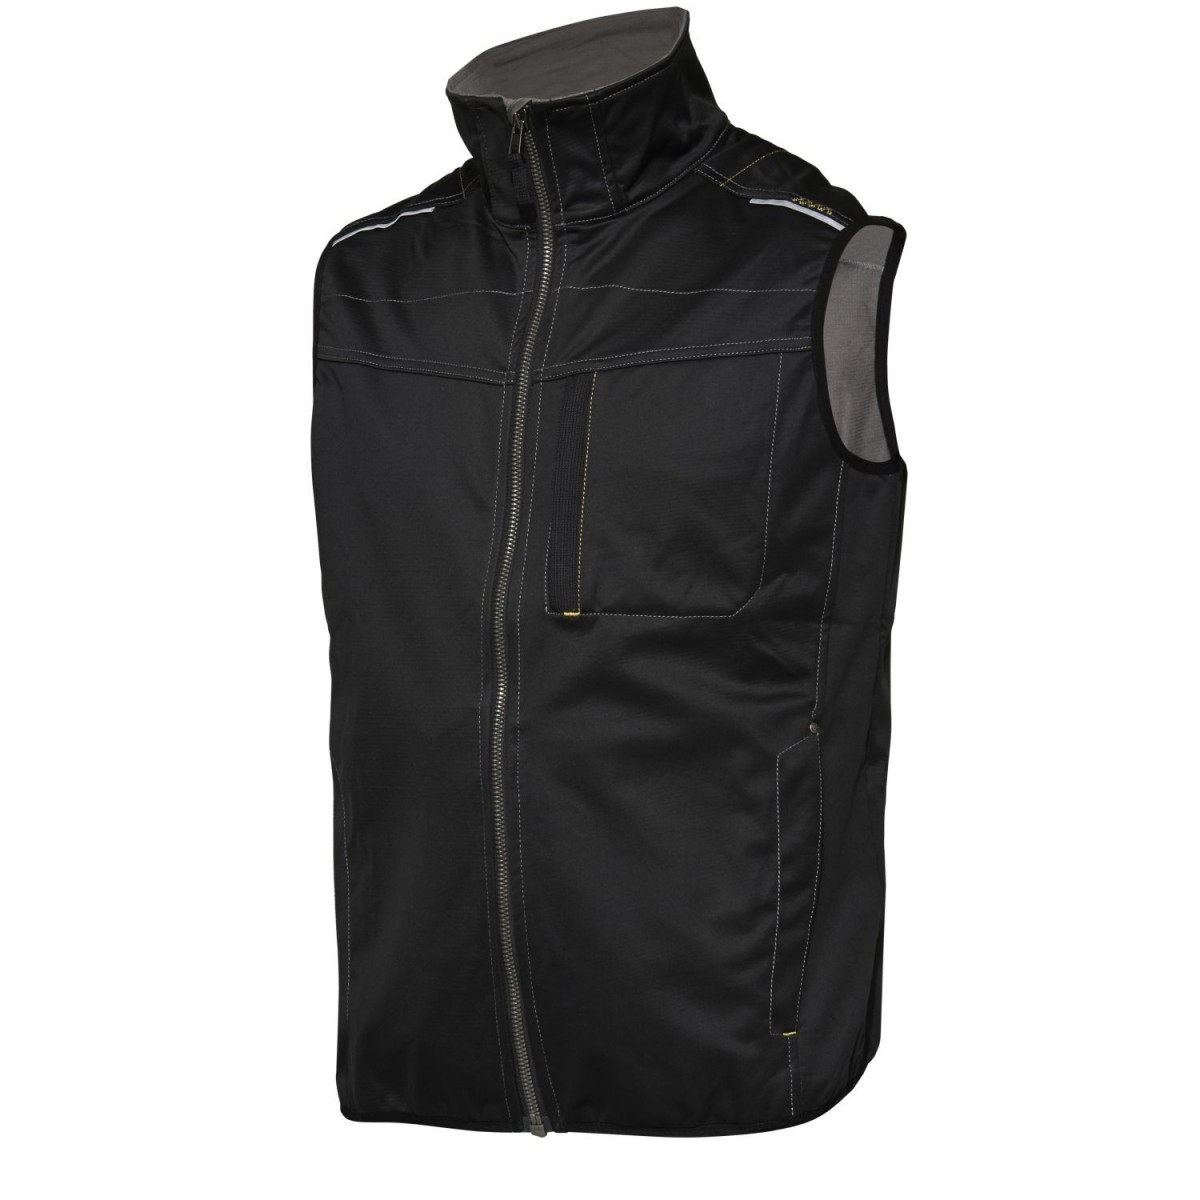 F. Engel Tech Zone Softshell Vest-33